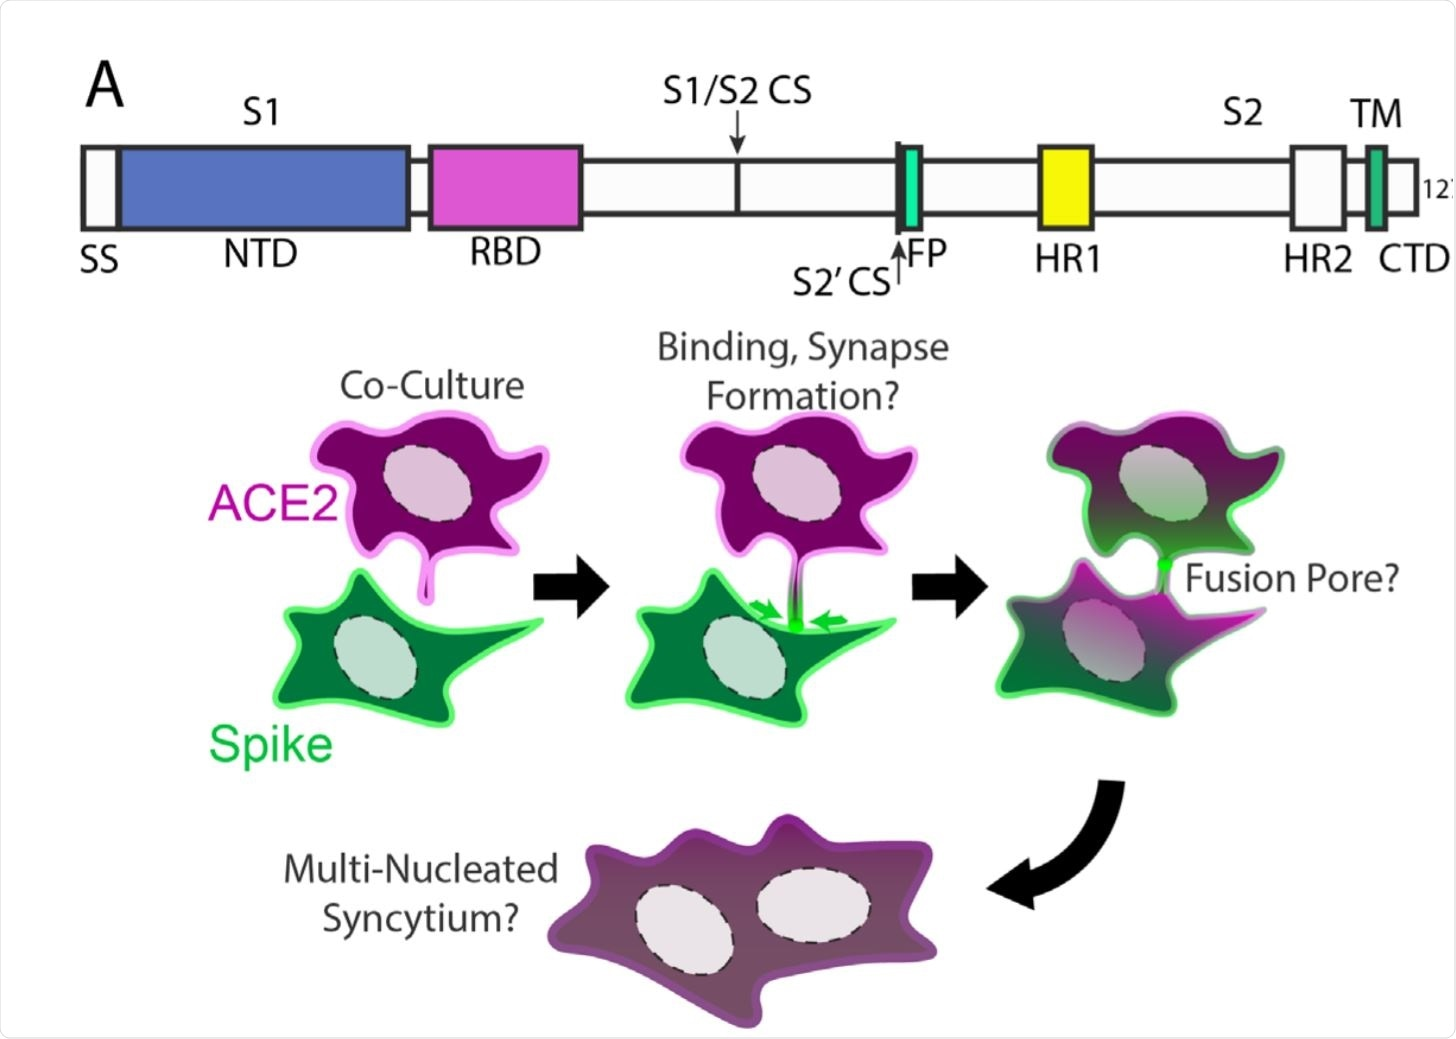 Syncytia derive from fusion events at synapse-like, spike-ACE2 protein clusters